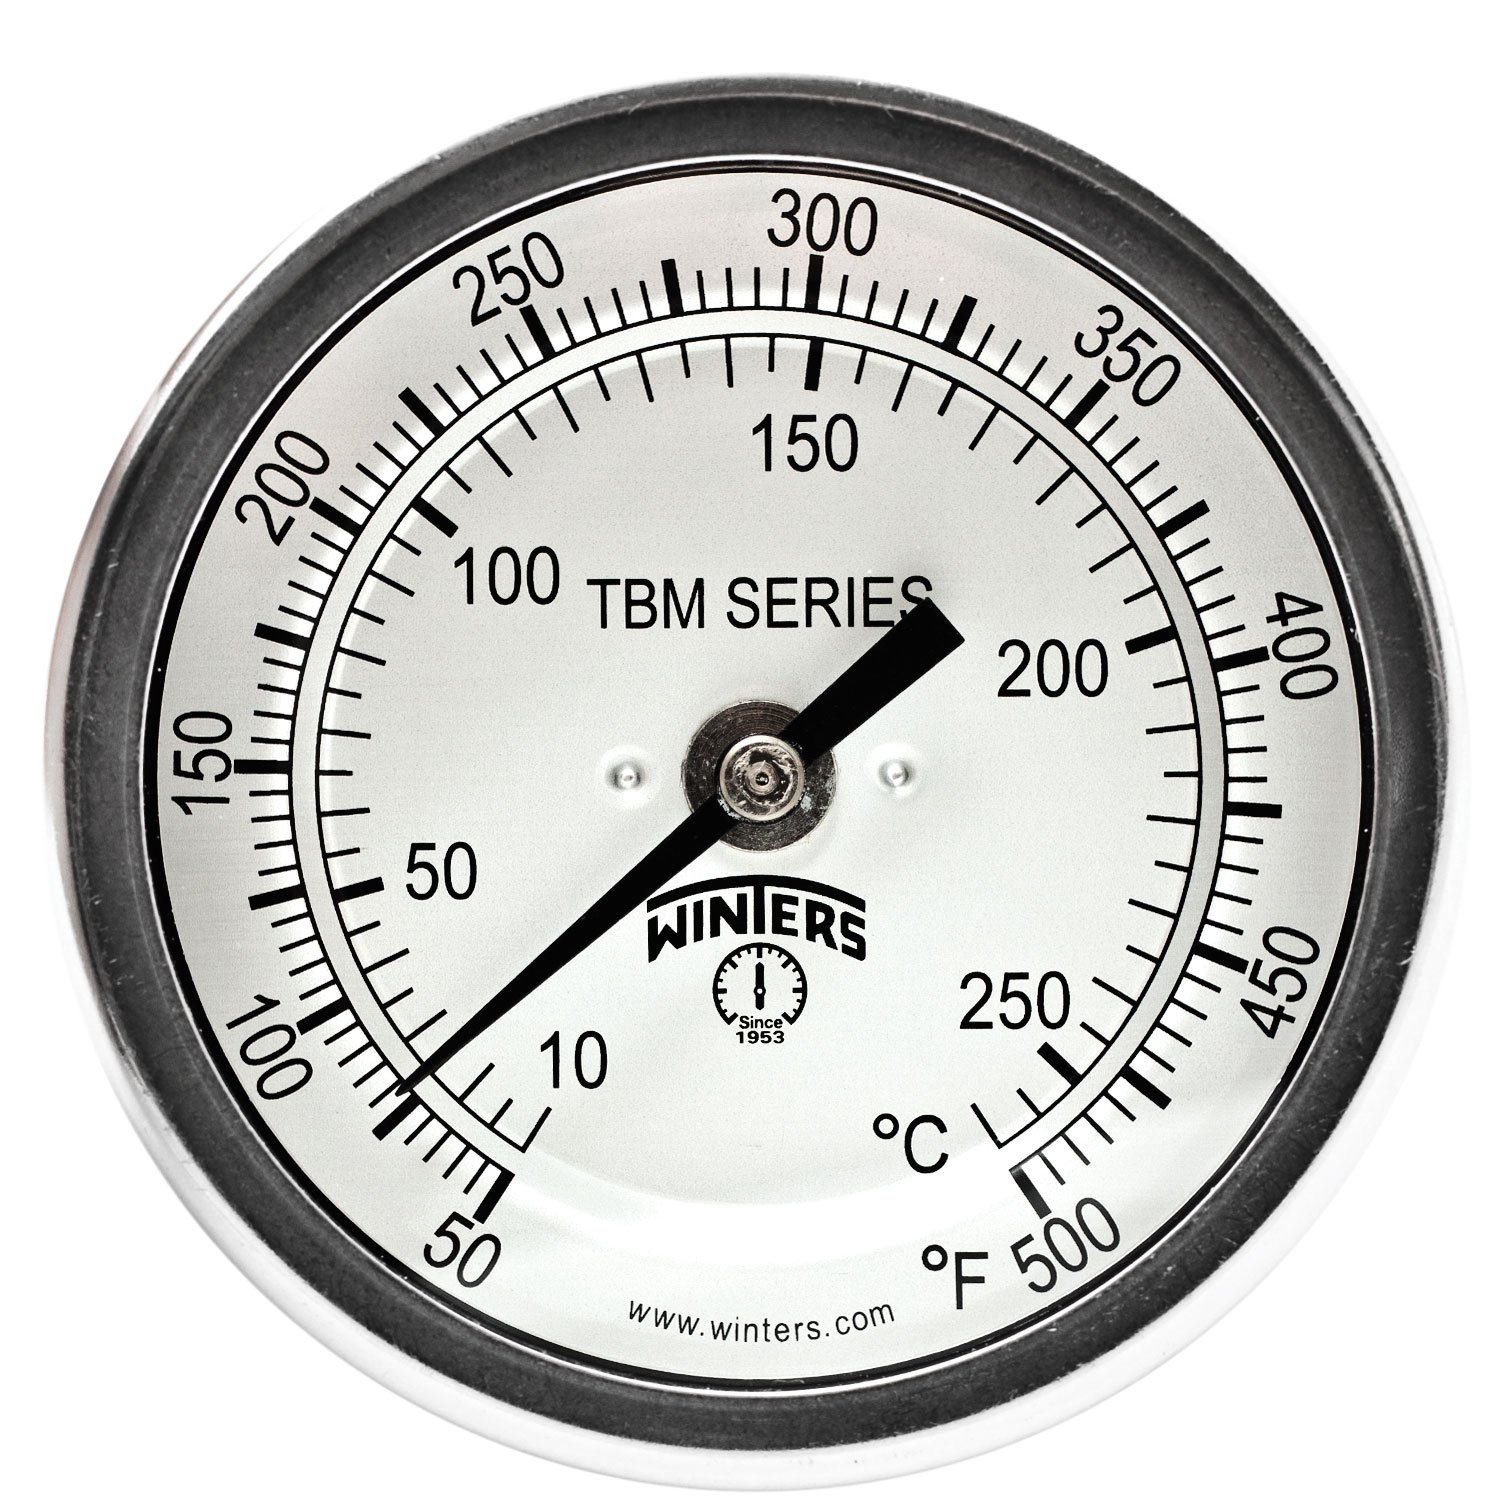 Winters TBM Series Stainless Steel 304 Dual Scale Bi-Metal Thermometer, 6'' Stem, 1/2'' NPT Fixed Center Back Mount Connection, 3'' Dial, 50-500 F/C Range